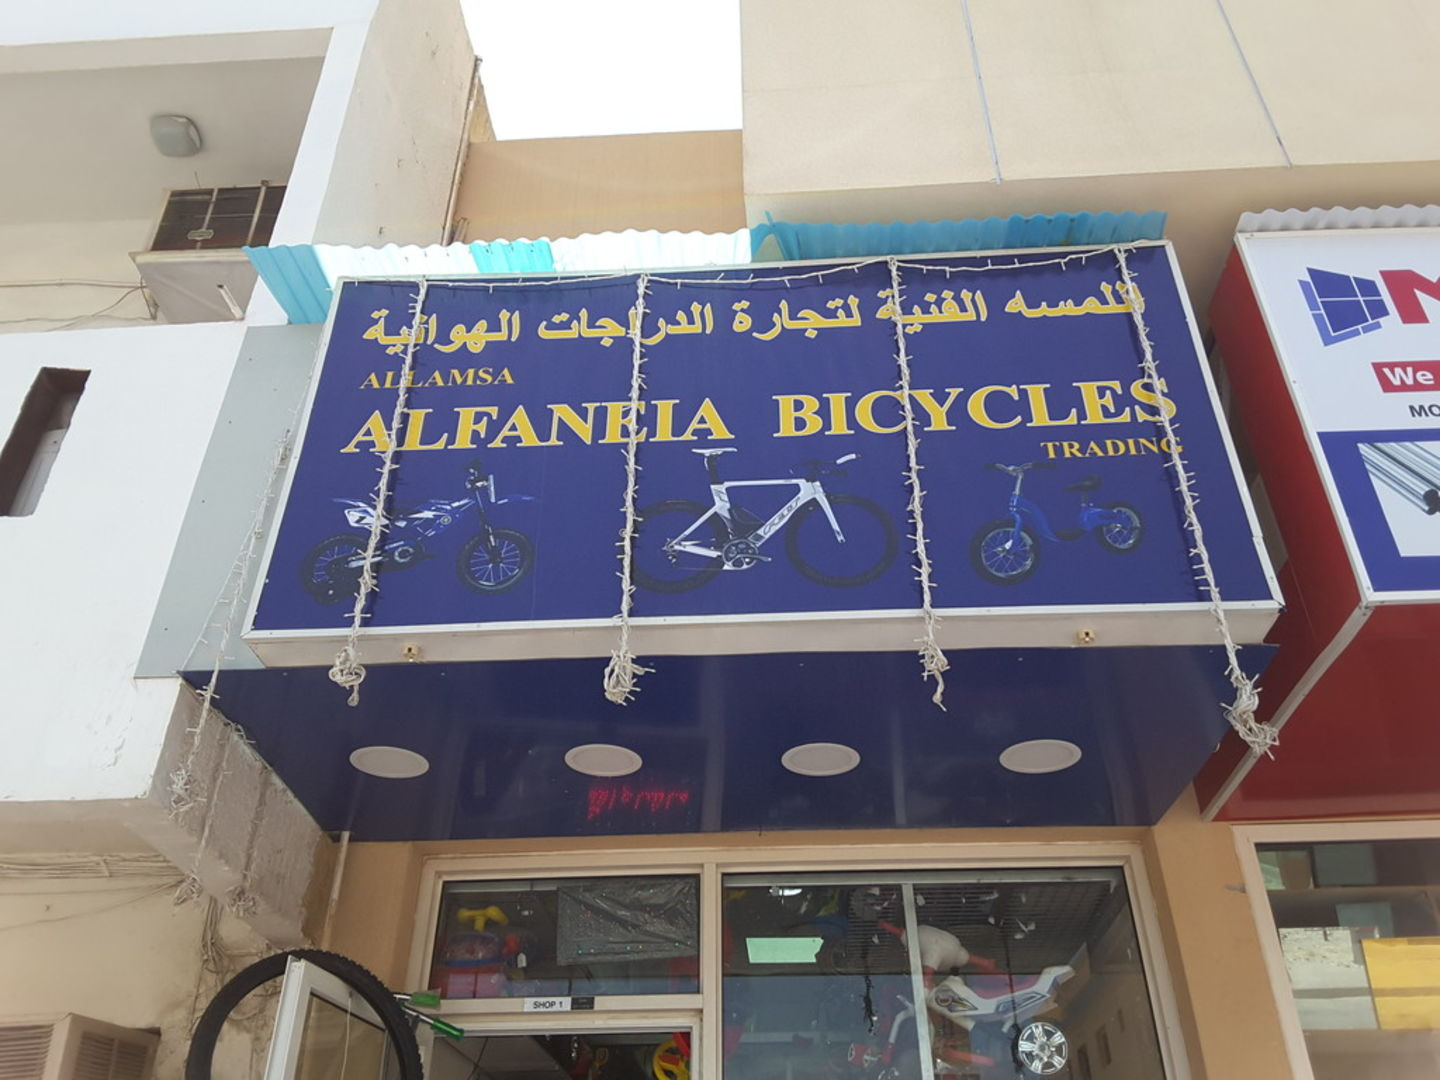 HiDubai-business-allamsa-alfanela-bicycles-trading-transport-vehicle-services-bicycle-spare-parts-accessories-hor-al-anz-dubai-2